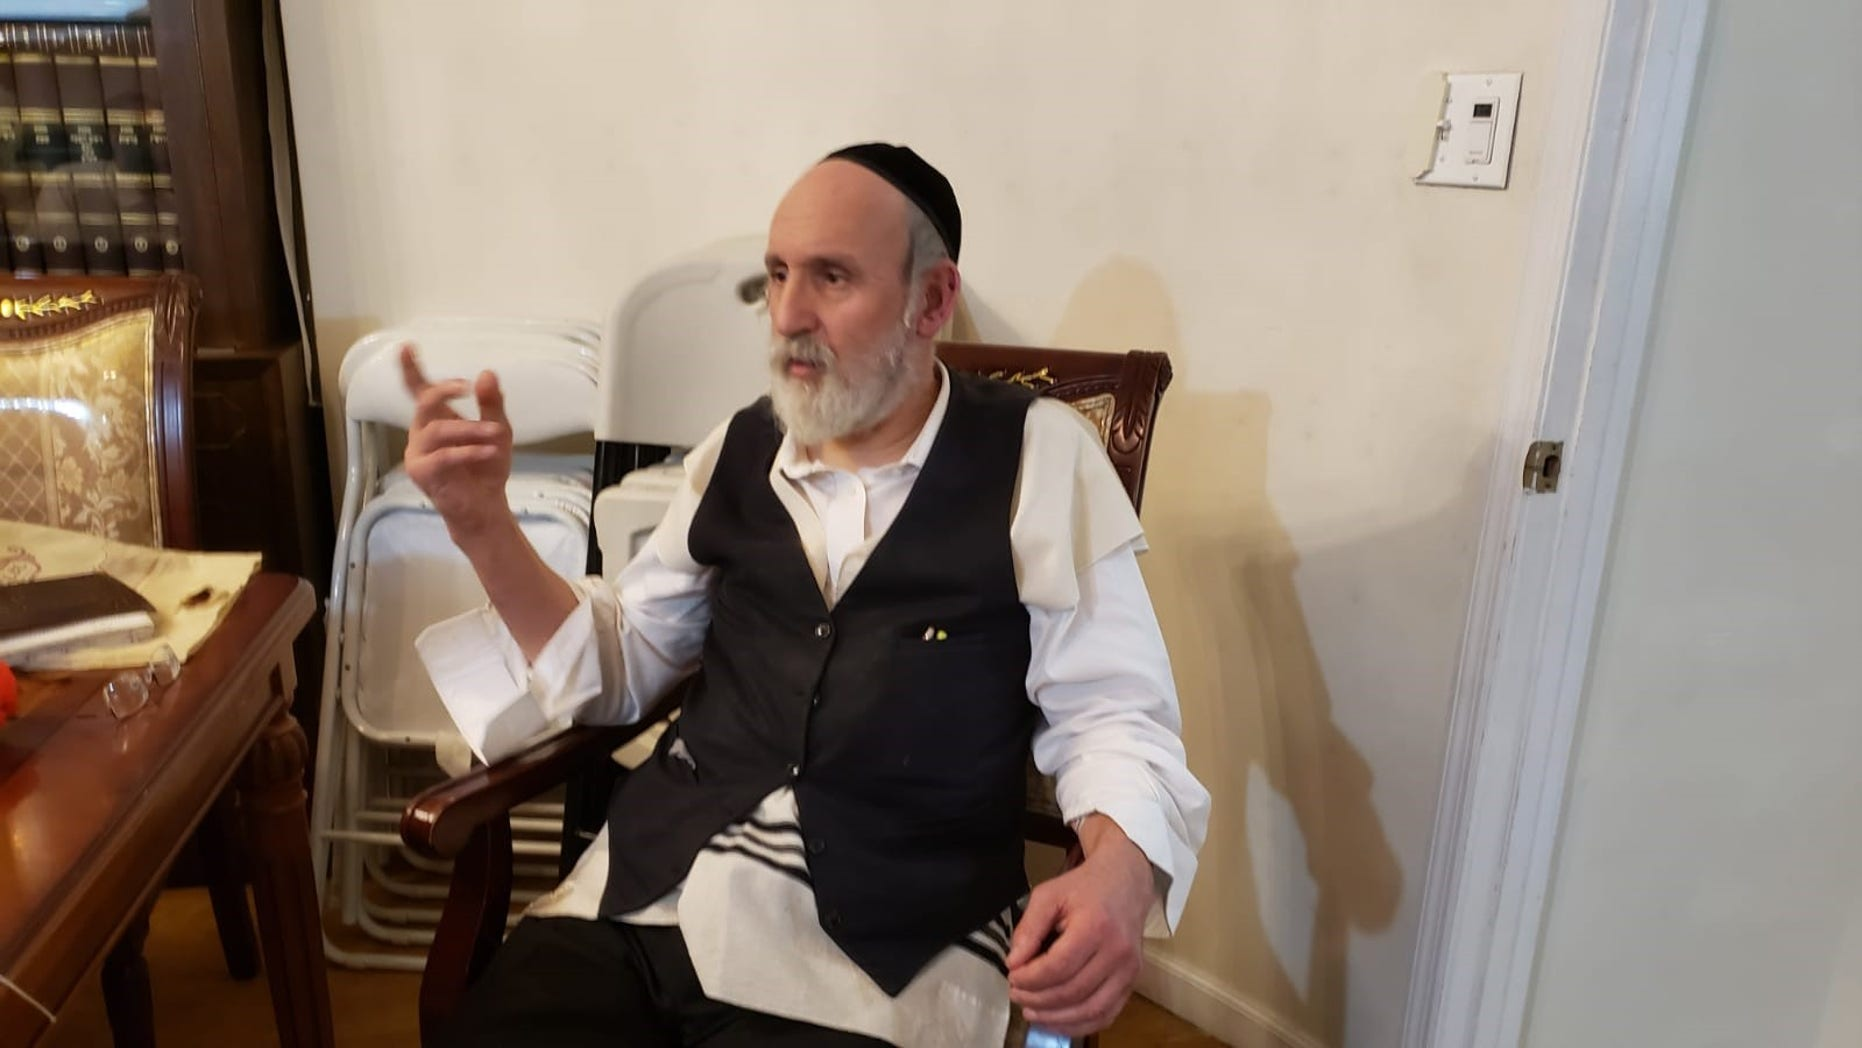 Lipa Schwartz, the victim of the attack, told the news website Boropark24 that he feared for his life.